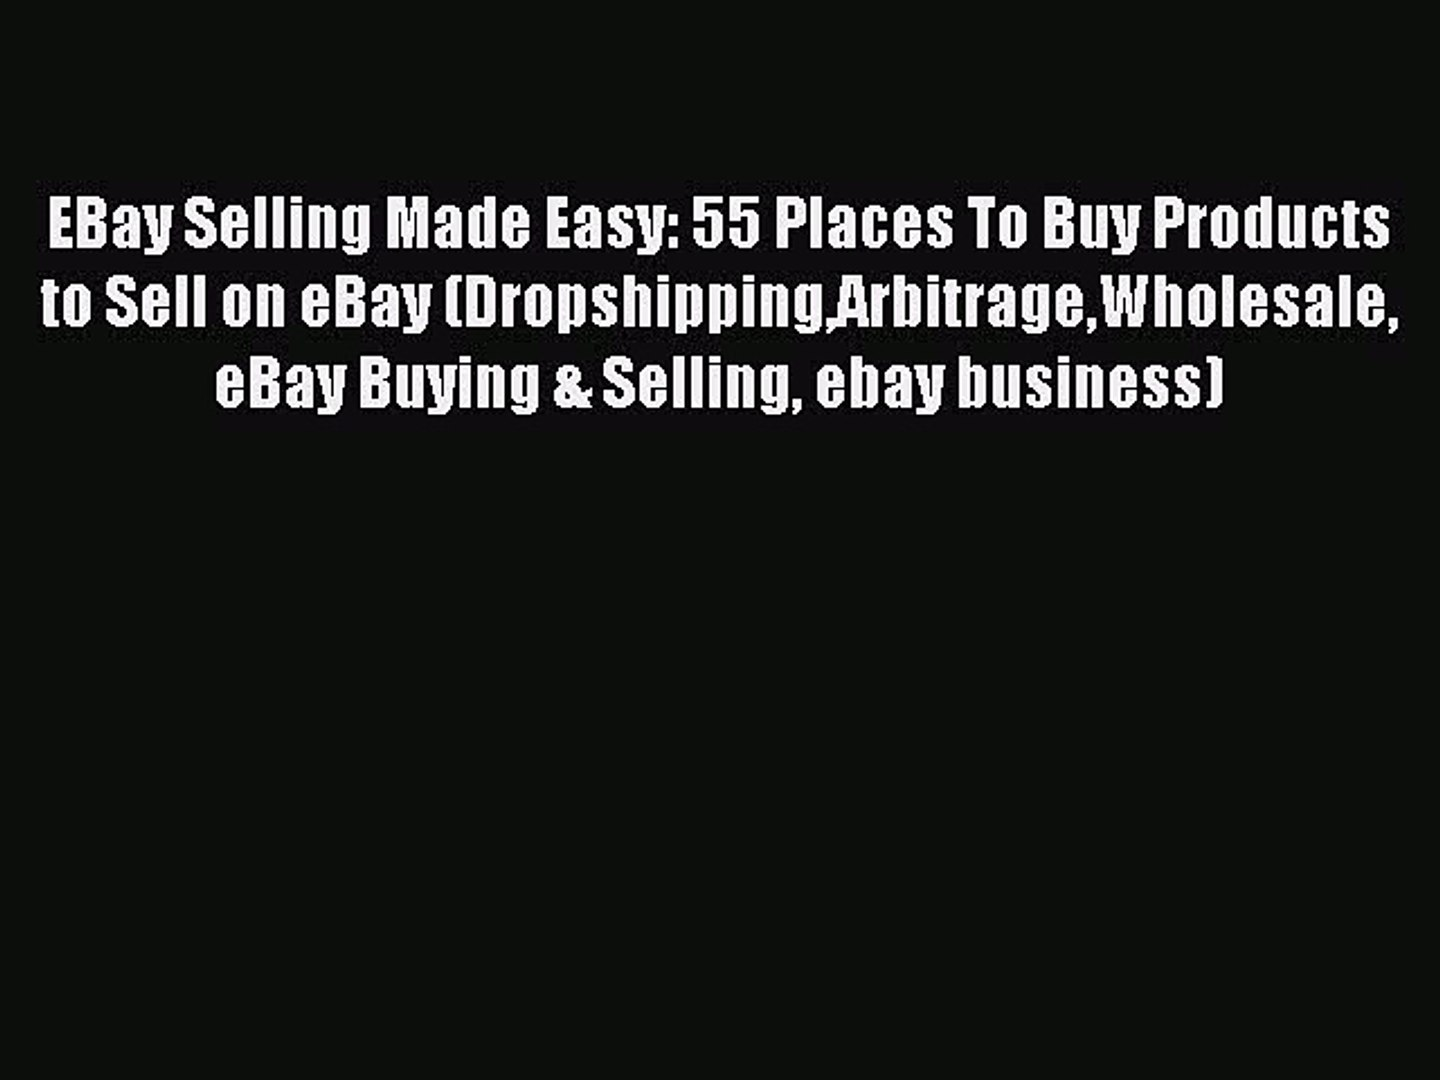 Read Book Ebay Selling Made Easy 55 Places To Buy Products To Sell On Ebay Dropshippingarbitragewholesale Video Dailymotion